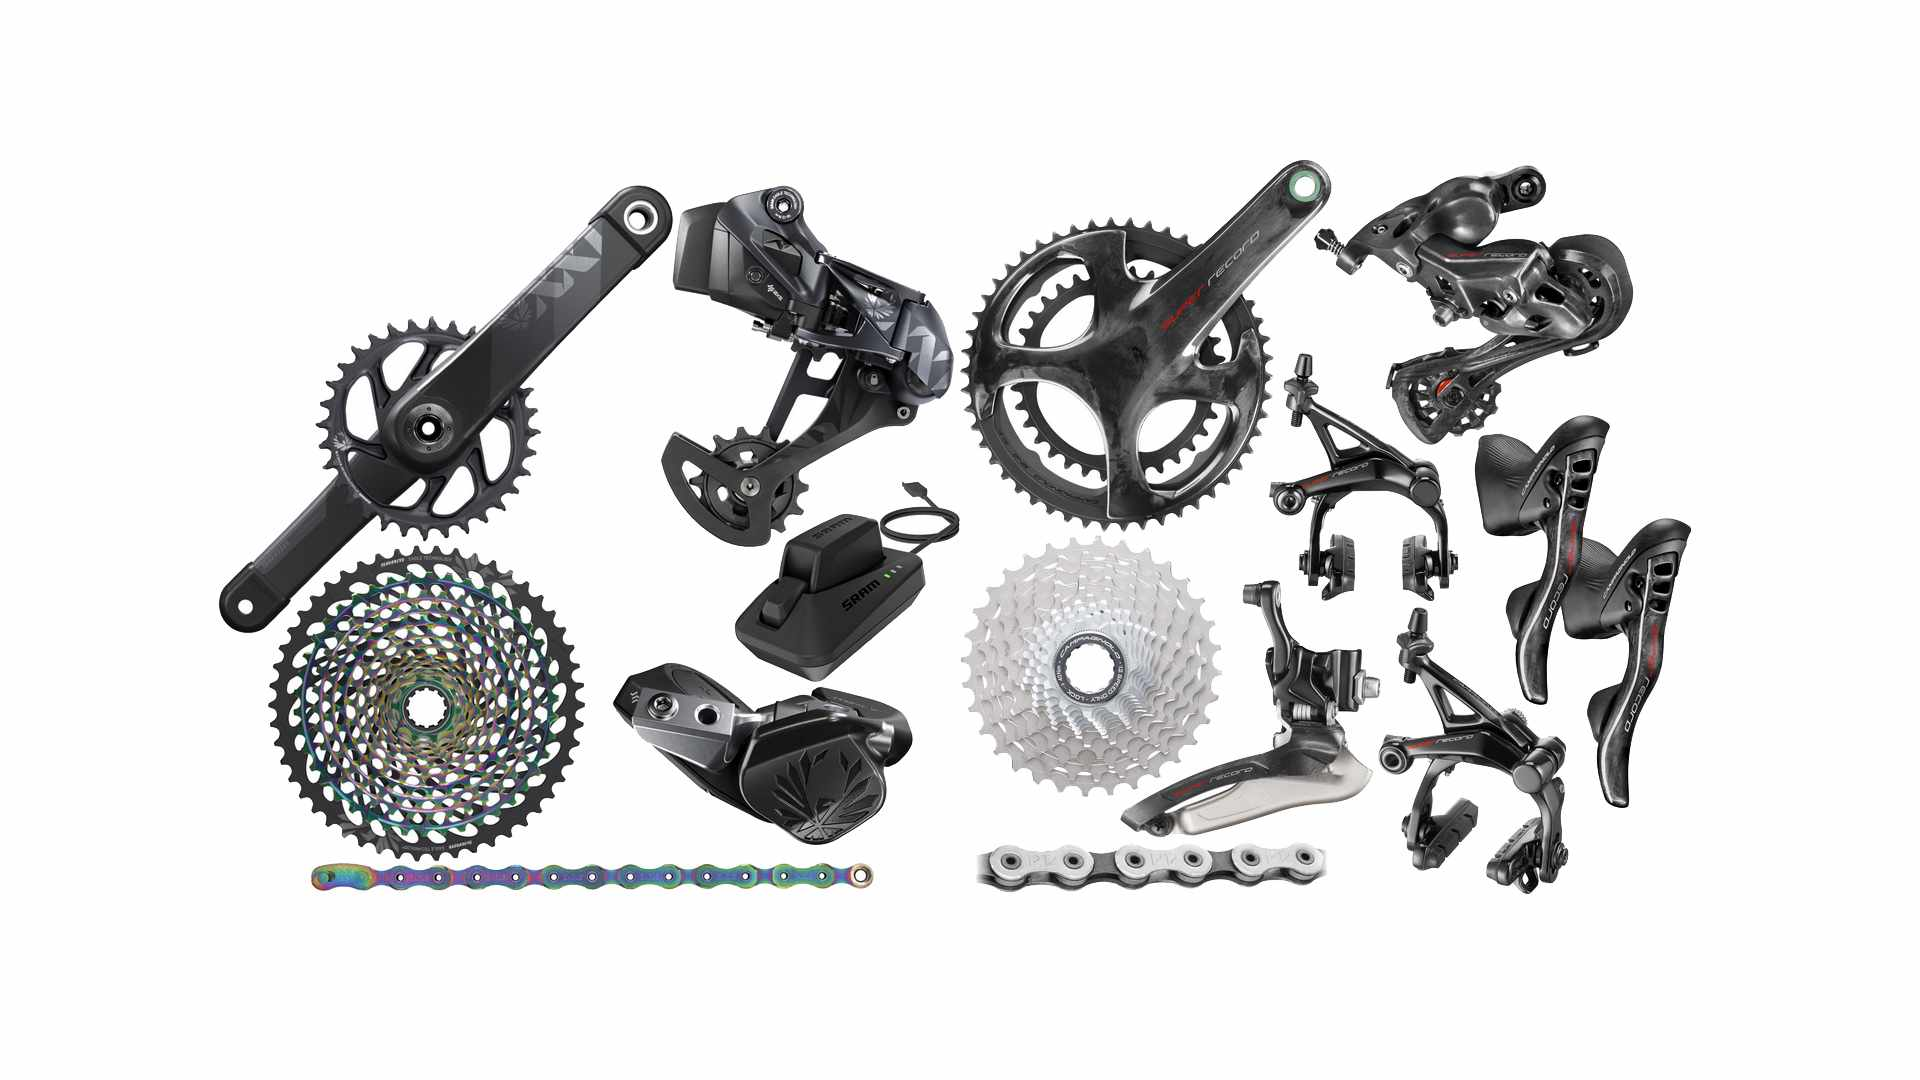 Collage of black and silver bicycle groupset parts on a white background